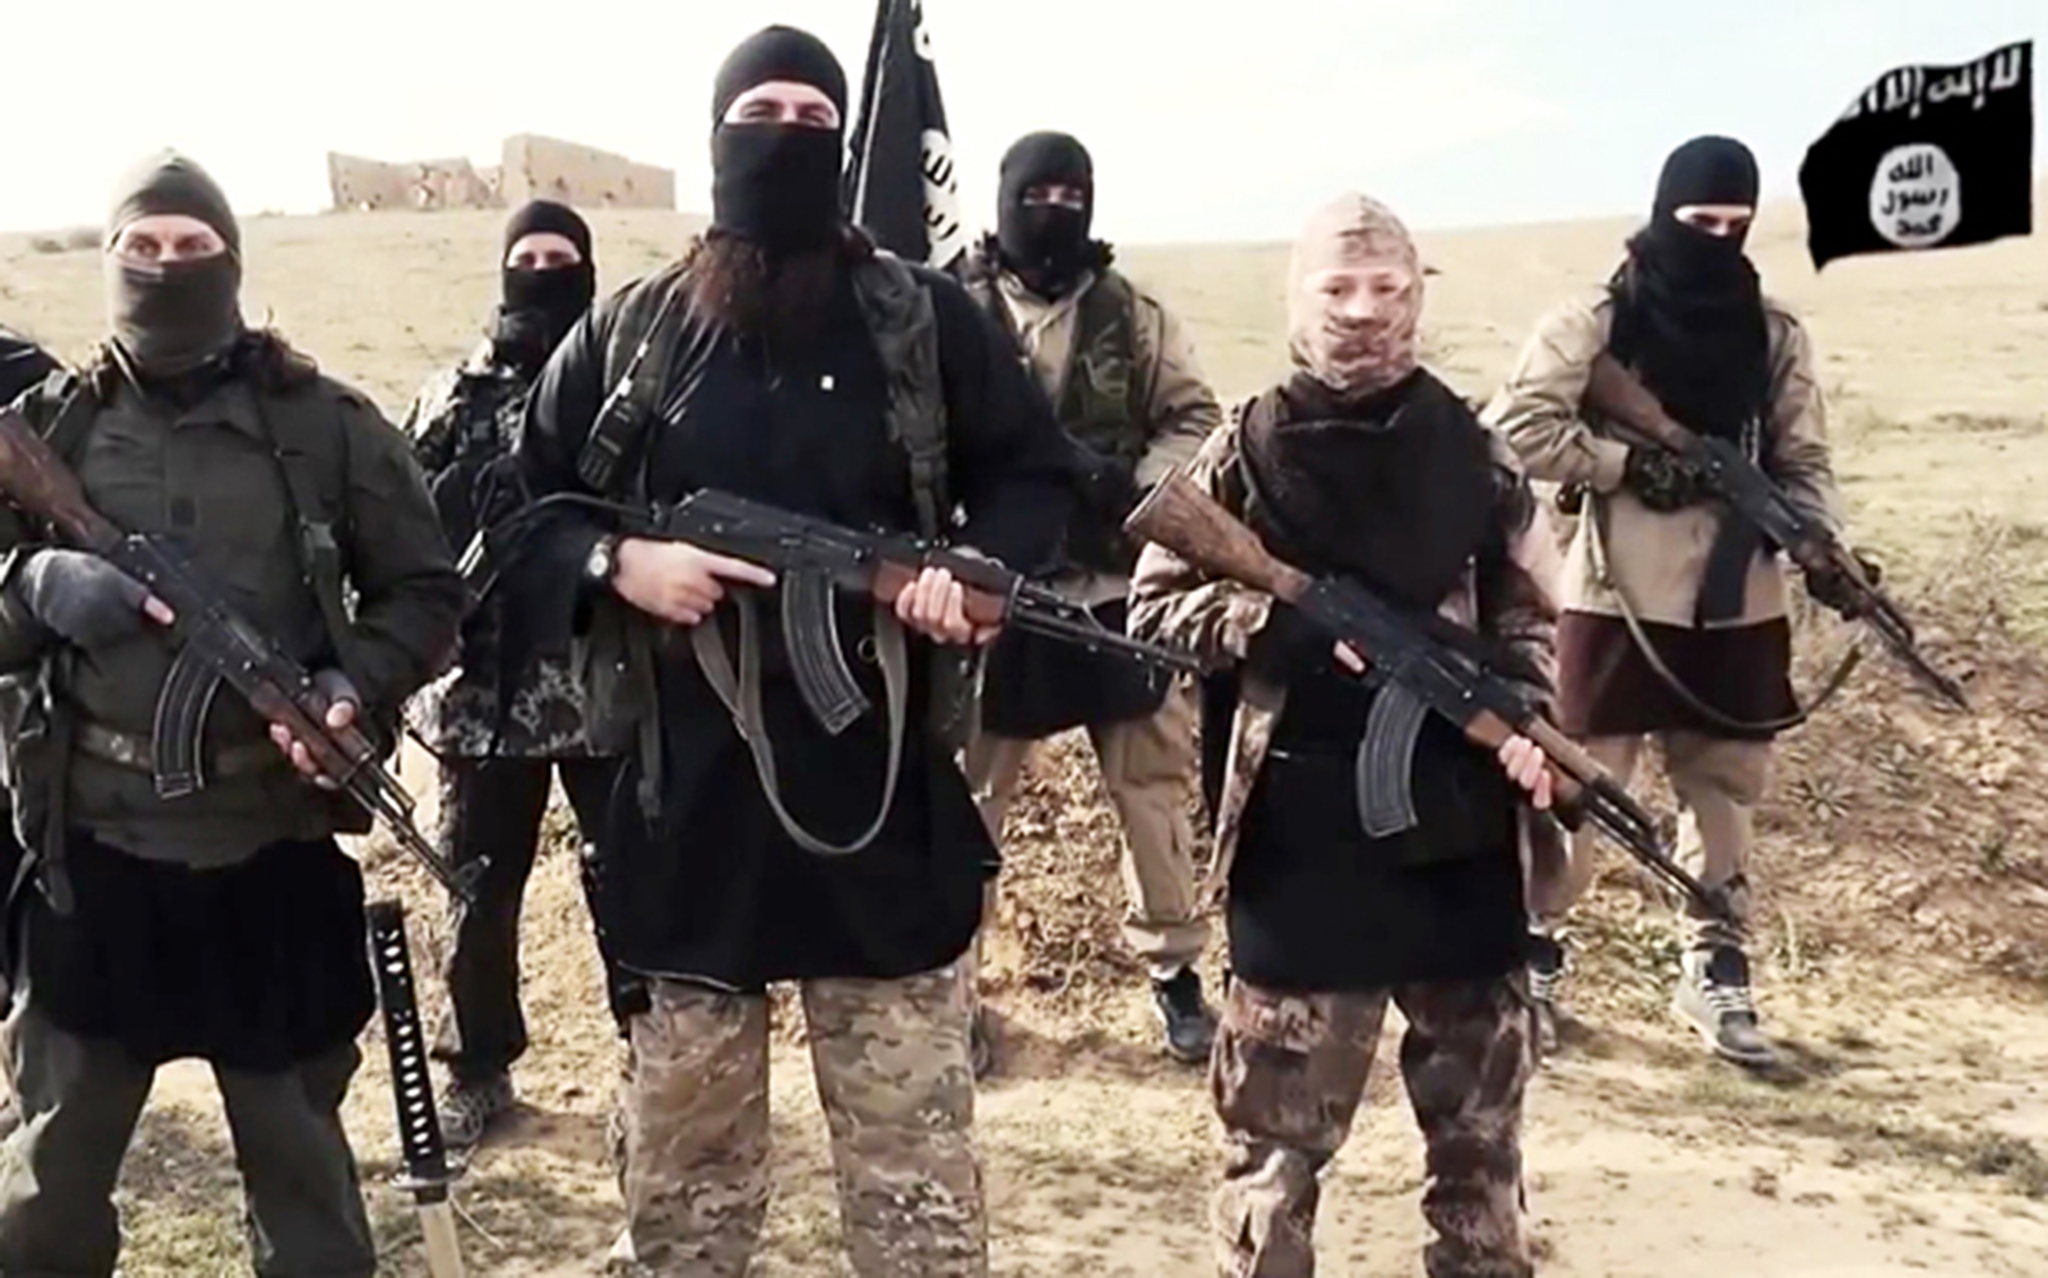 Islamic State Tells Fighters To Attack Westerners In Their Homes